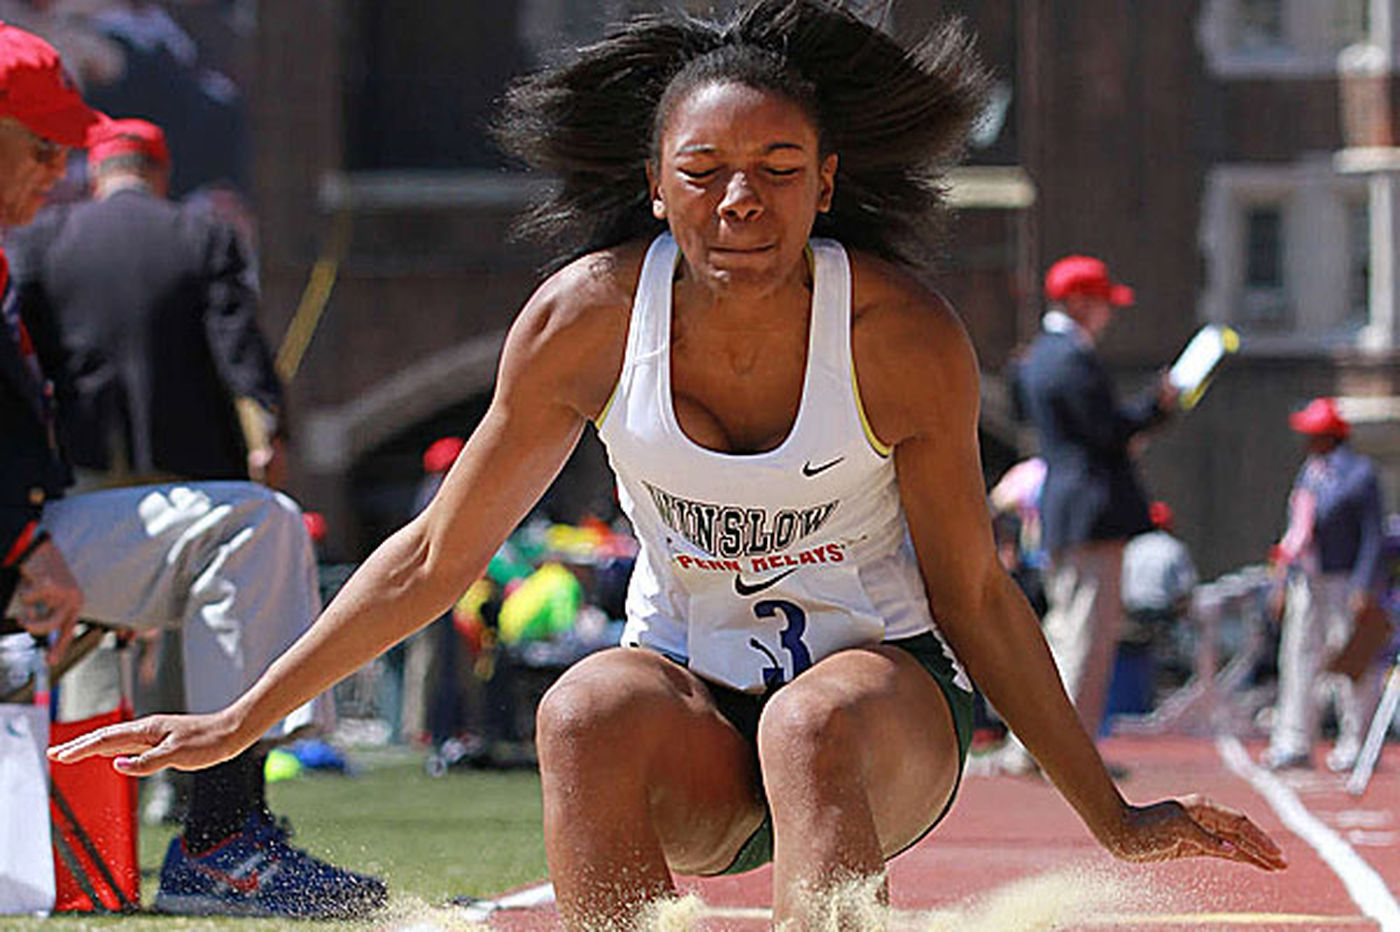 S.J. athletes to watch at Penn Relays